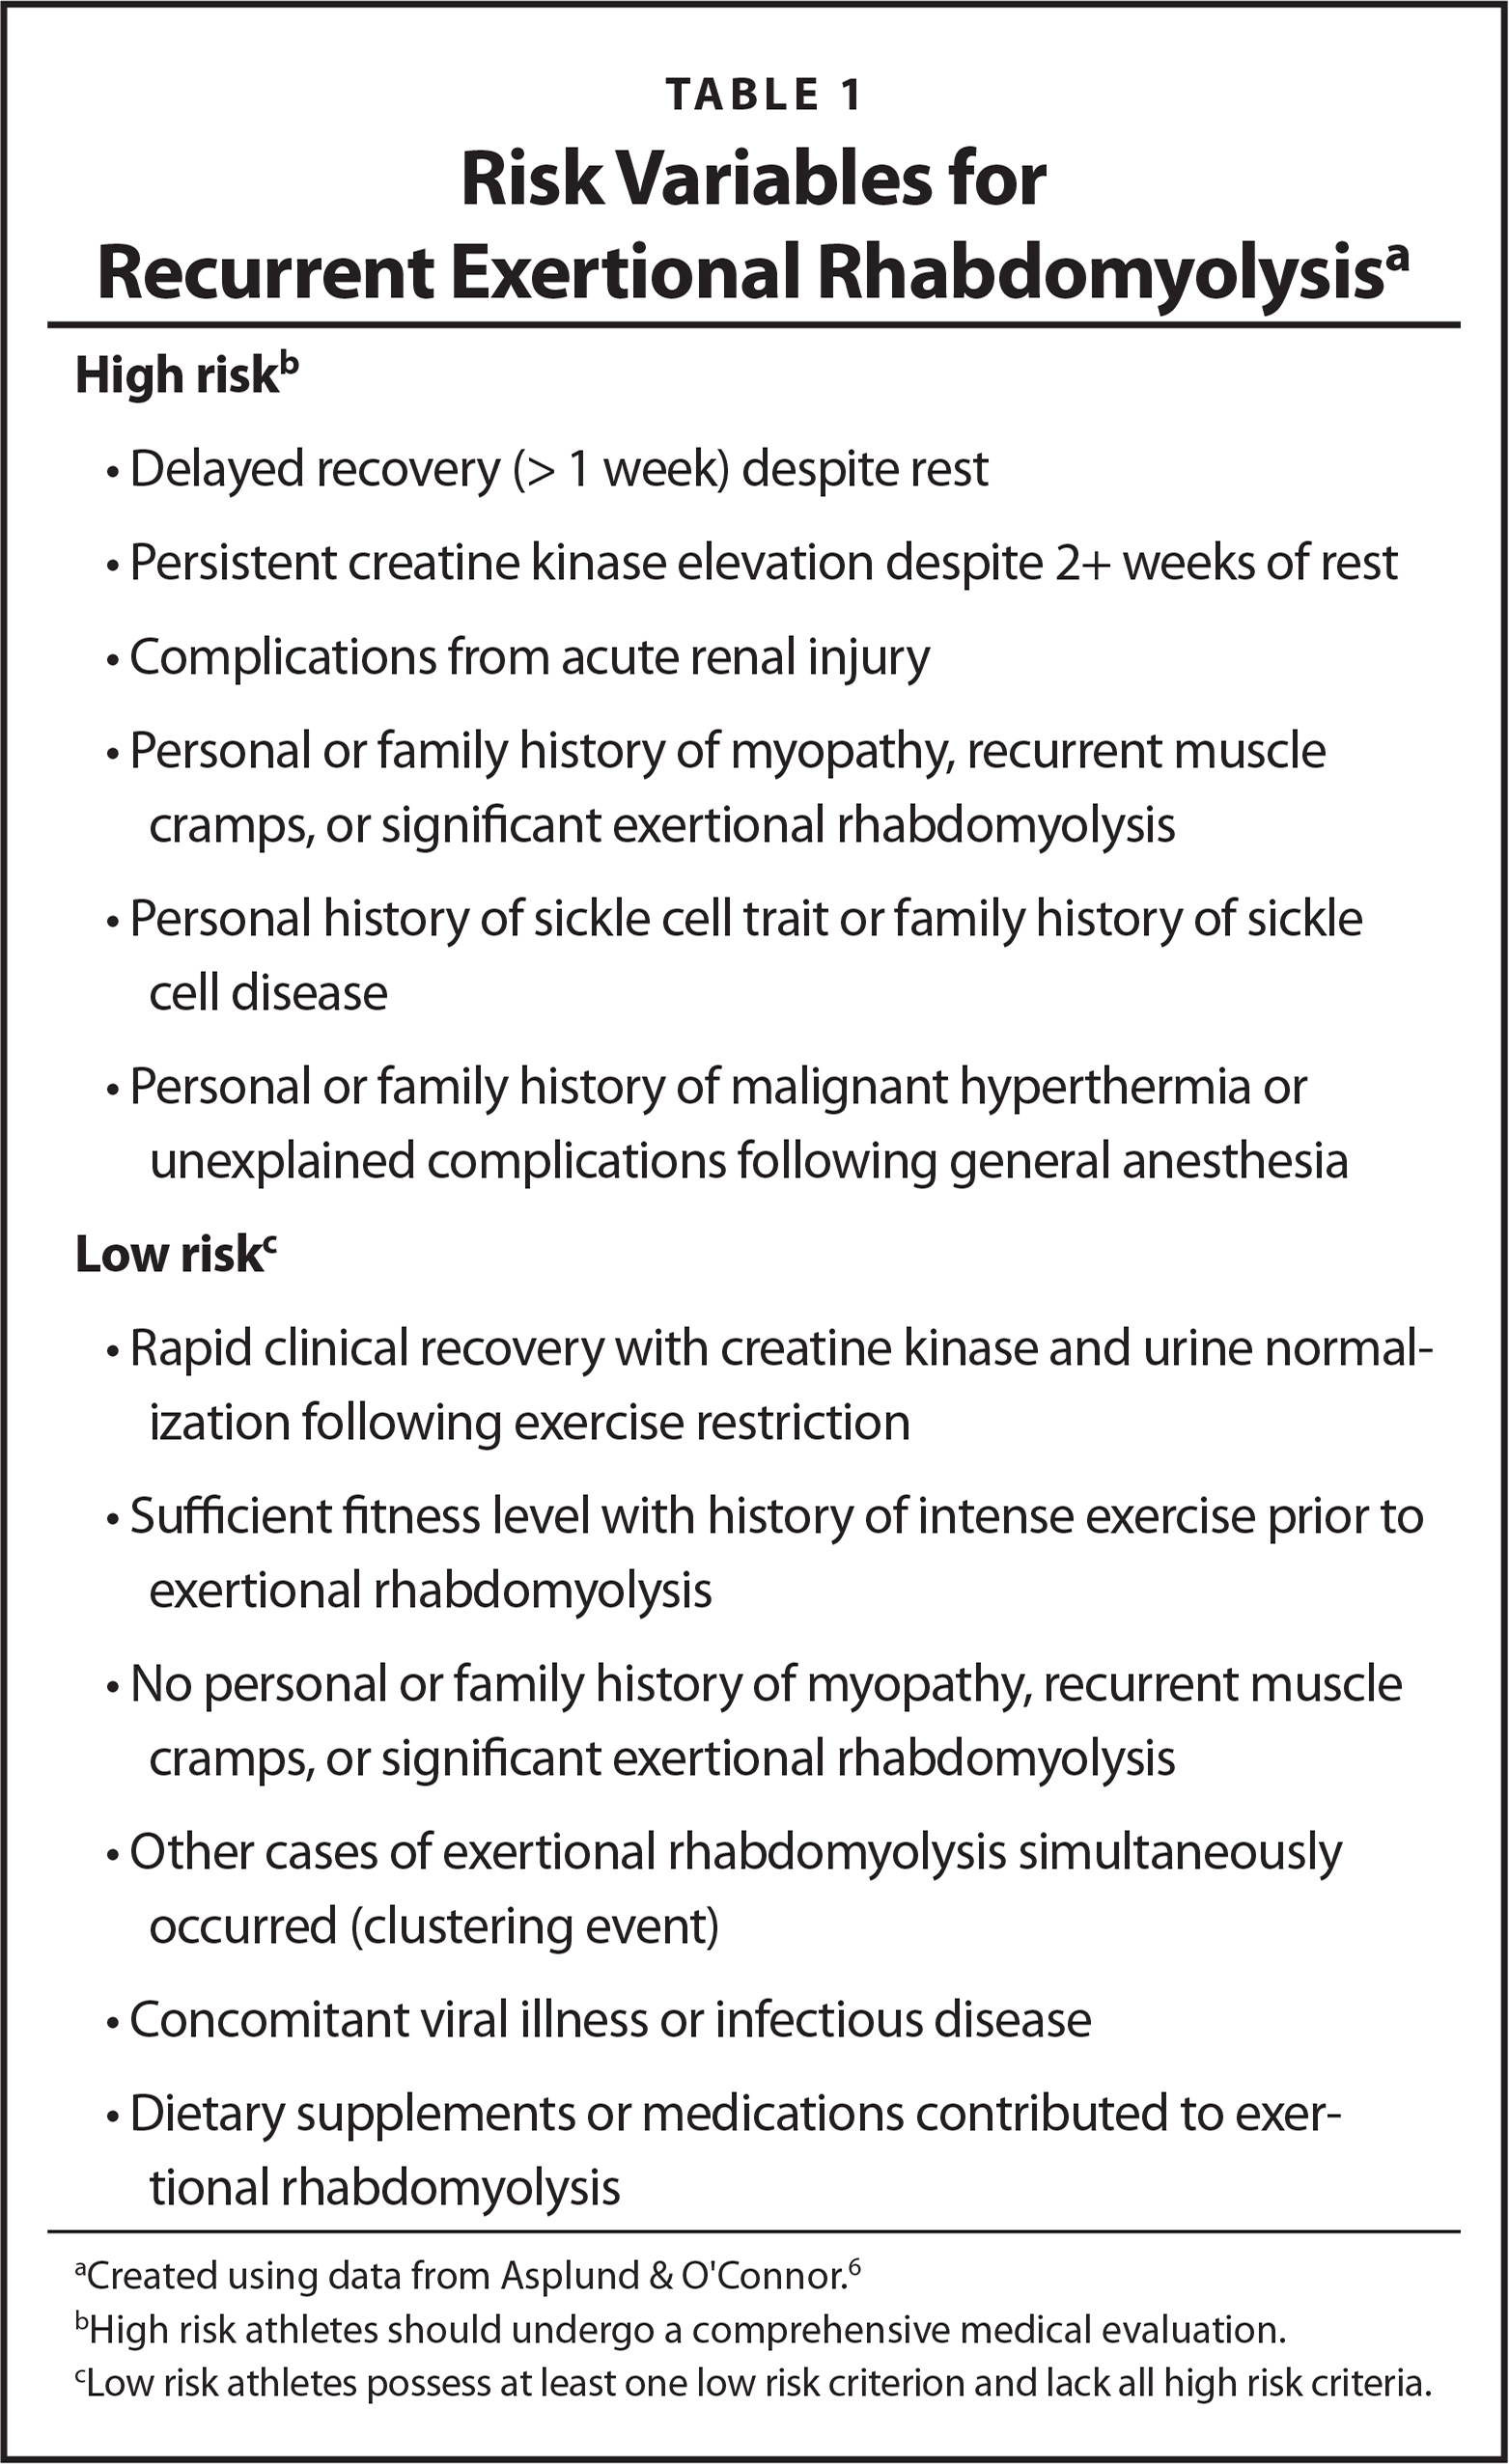 Risk Variables for Recurrent Exertional Rhabdomyolysisa